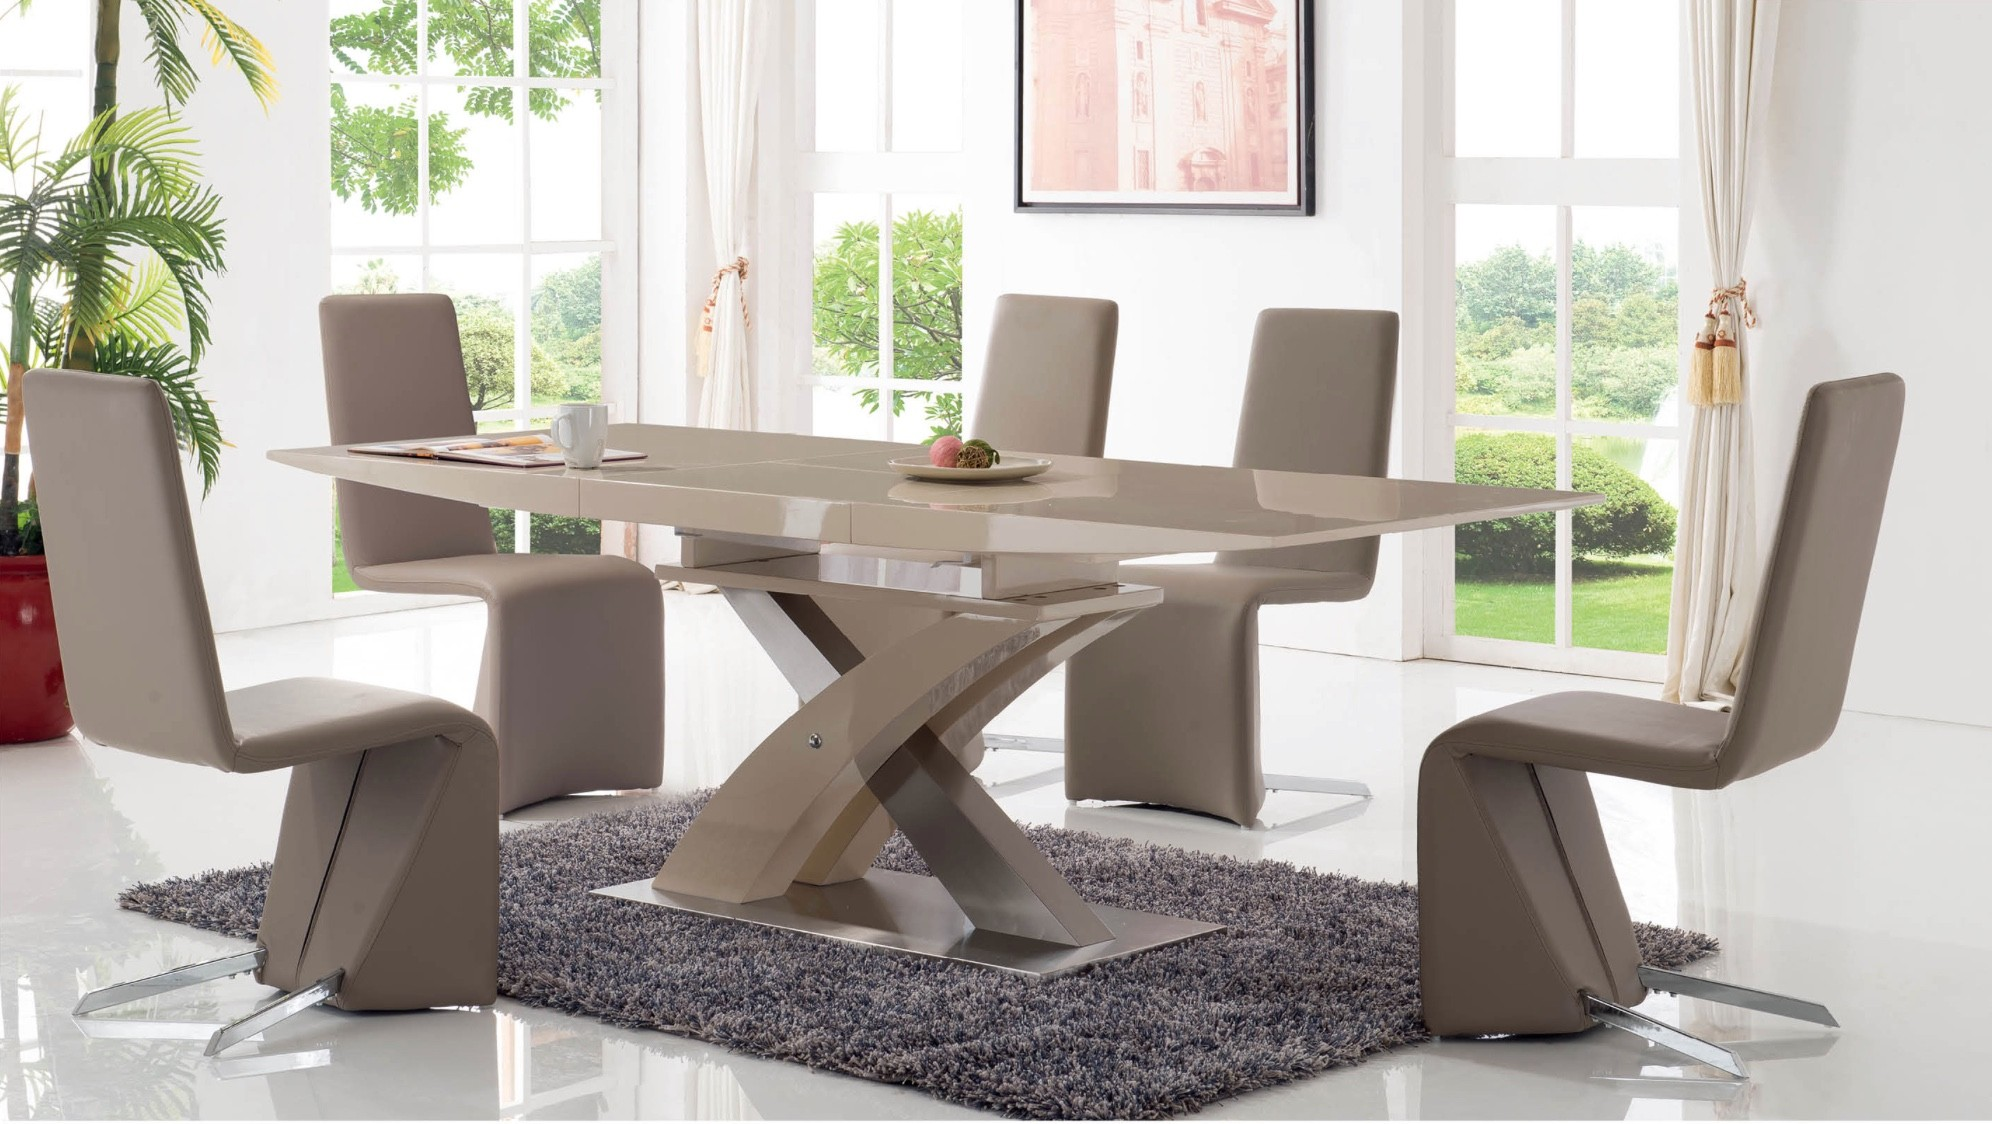 2122 Modern Dining Room Table